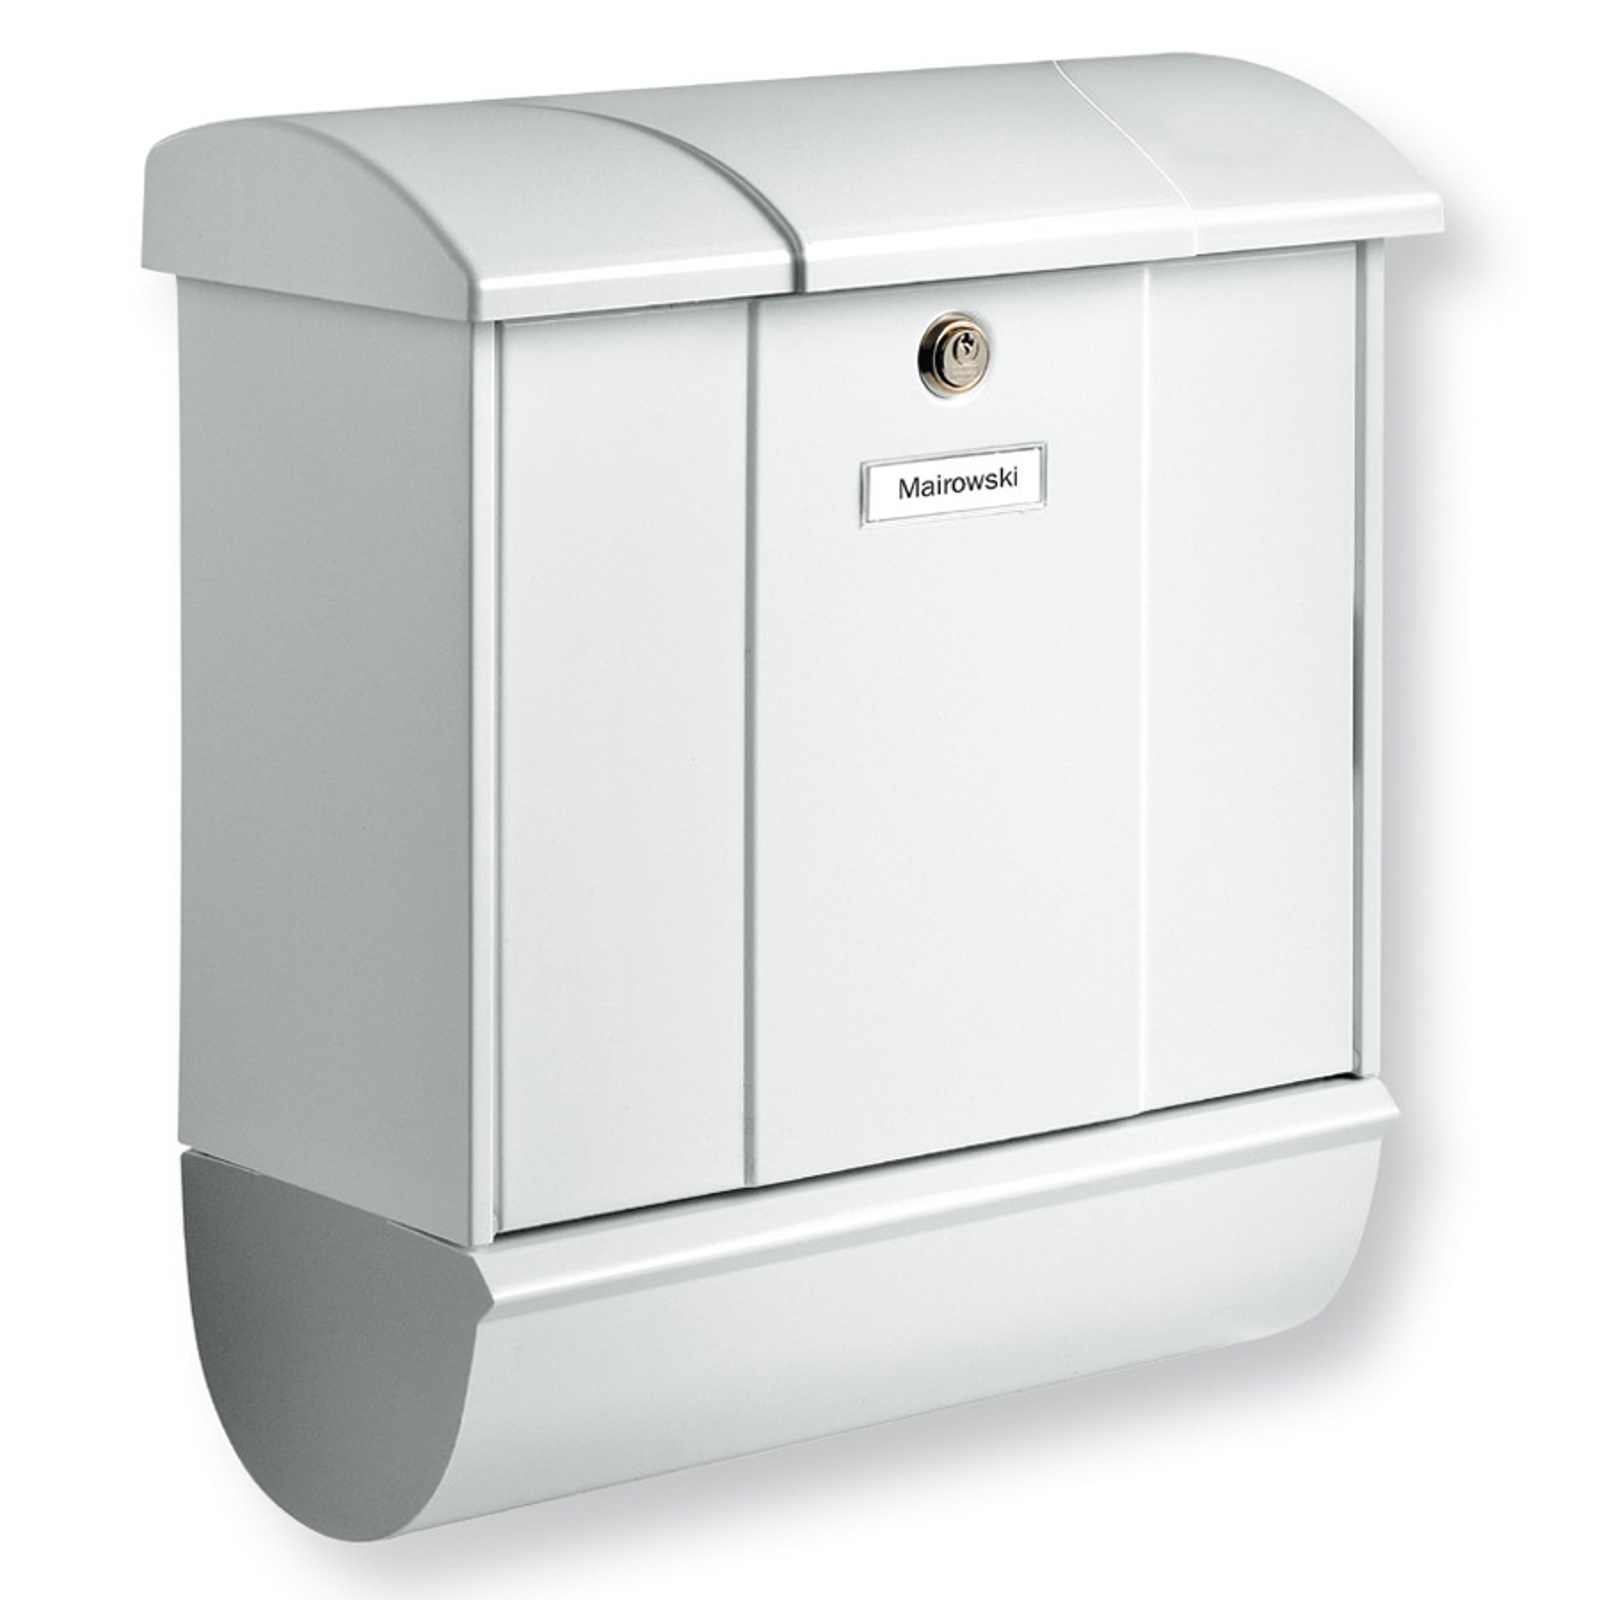 Olymp letterbox with newspaper holder_1532077_1